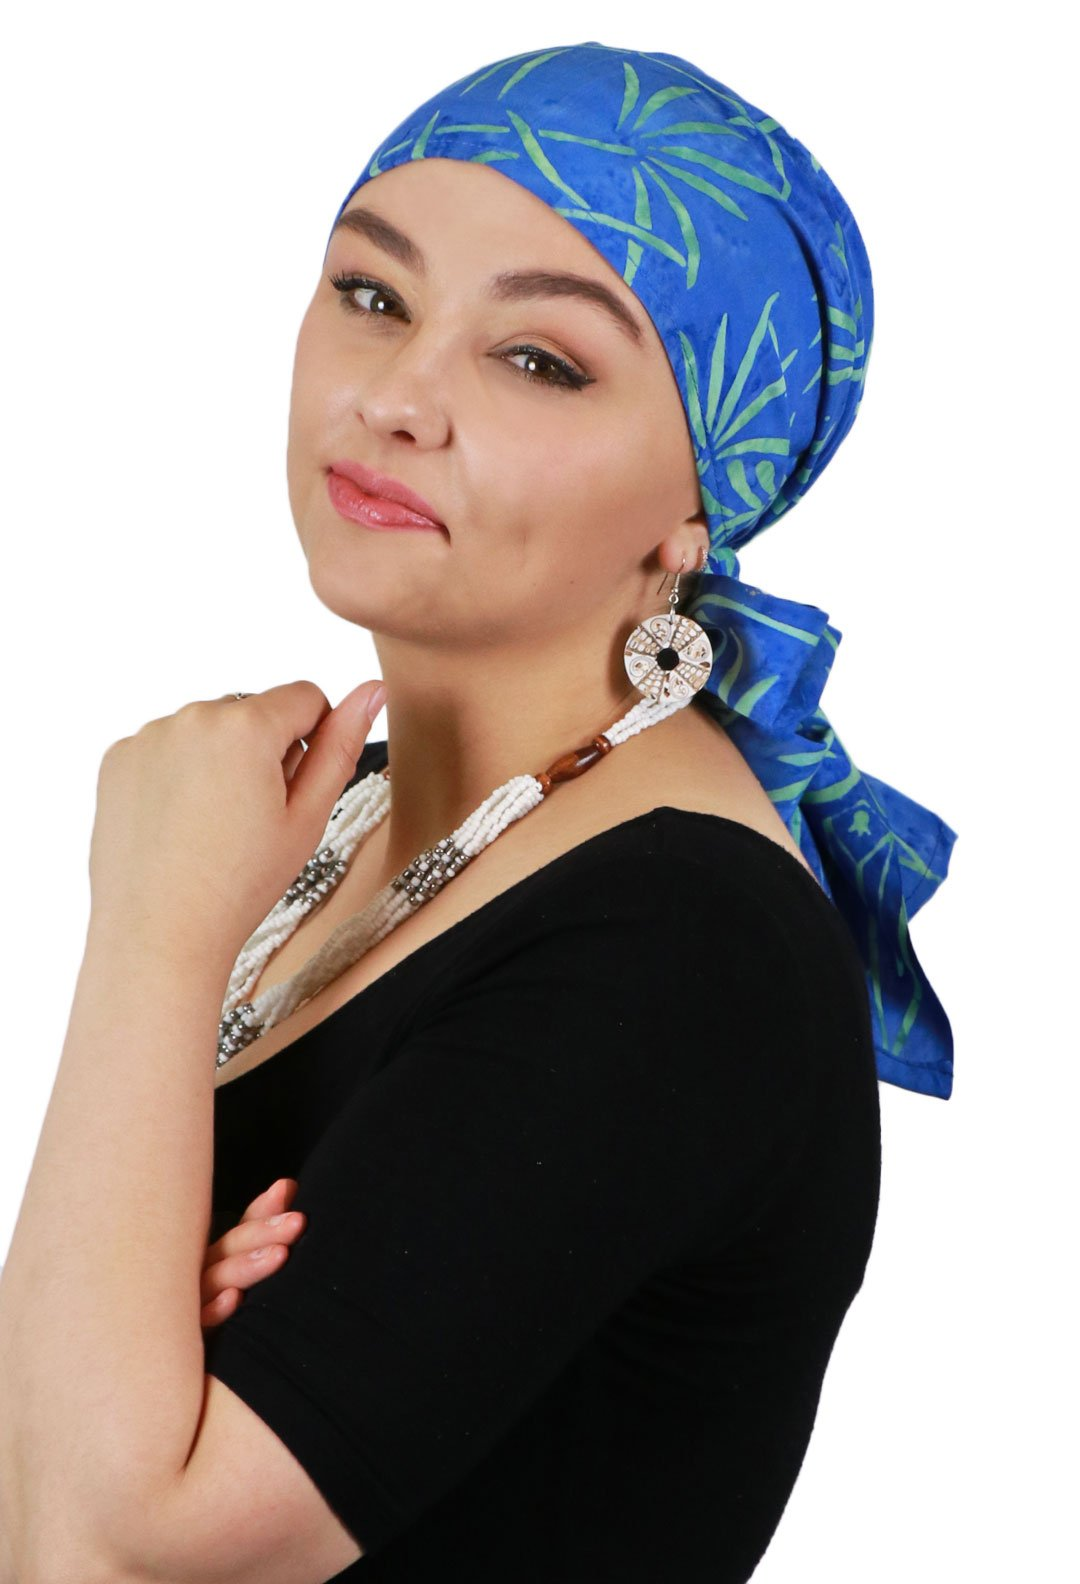 Head Scarf for Women Cancer Headwear Chemo Scarves Headscarves Headcovers 15 X 60 (Pacific Fern)